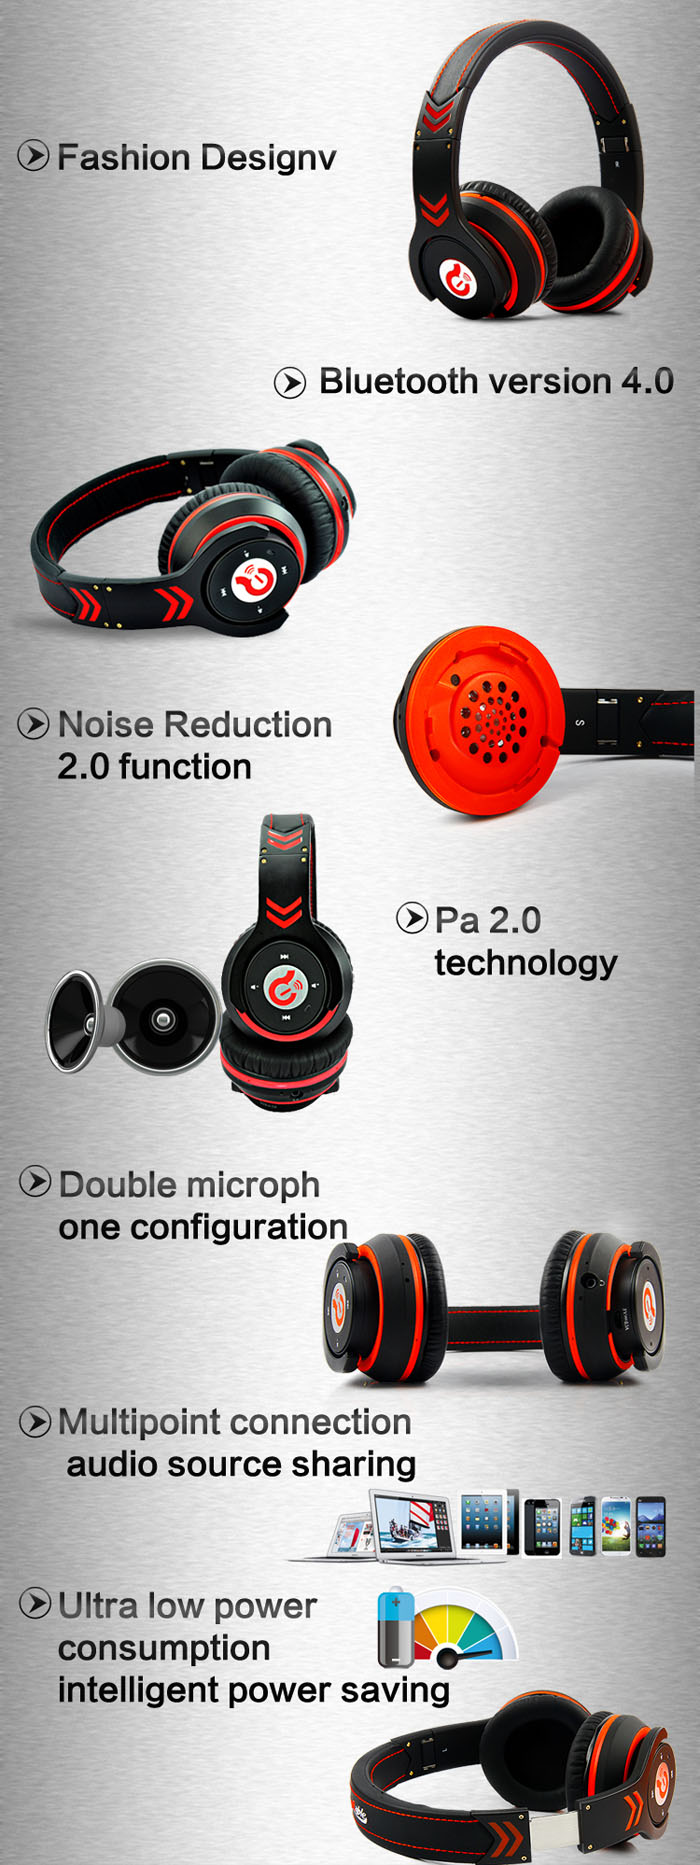 Syllable G18 Deluxe Fashion Wireless Bluetooth 4.0 Multi-point connection Supported Hi-Fi Stereo Headphone Headset